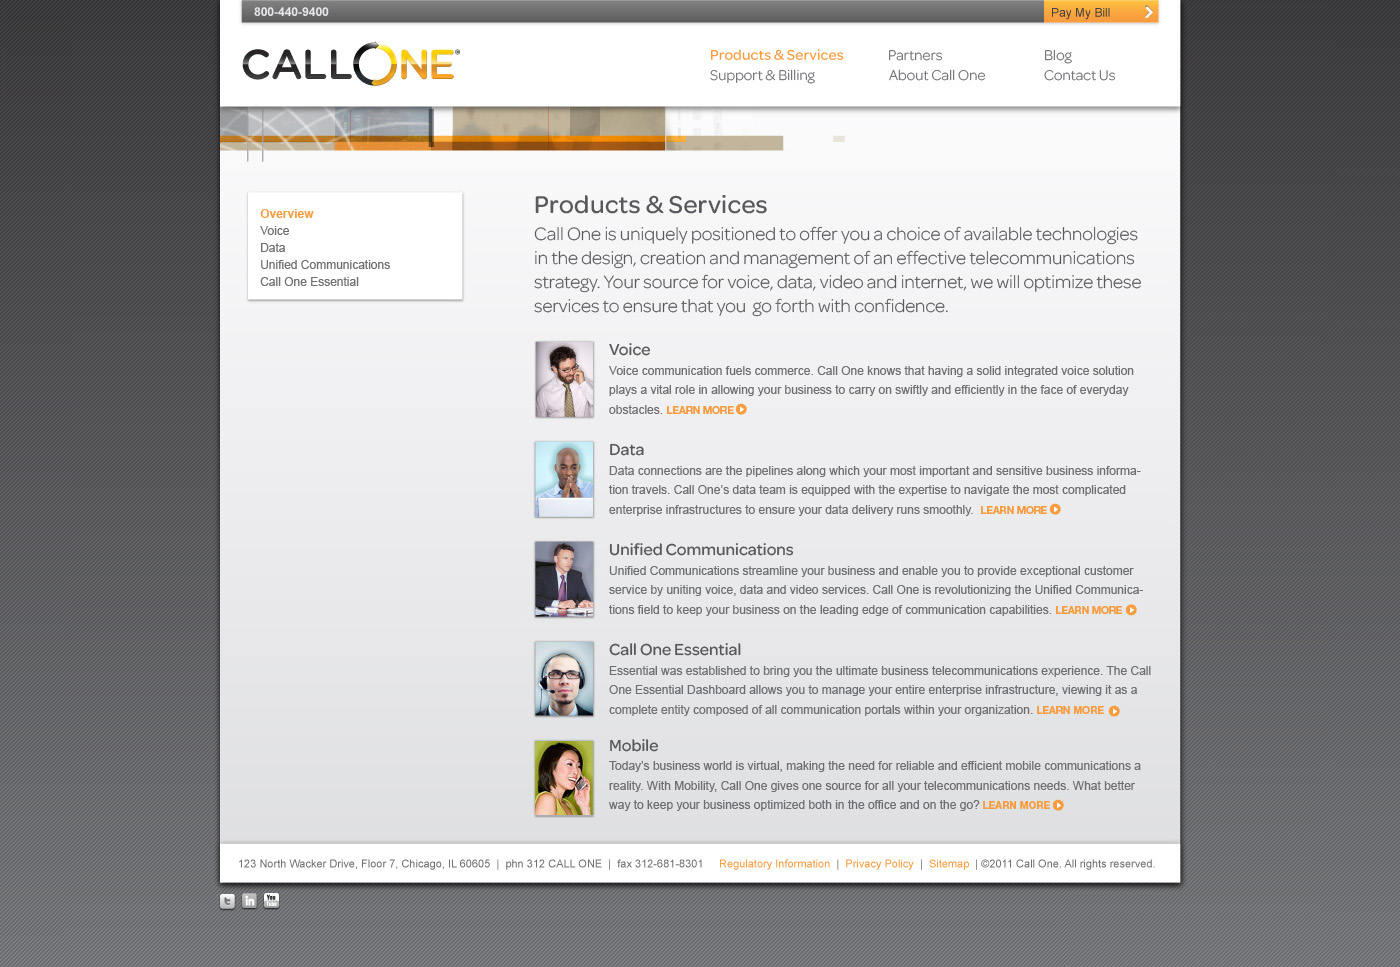 call-one-home-final